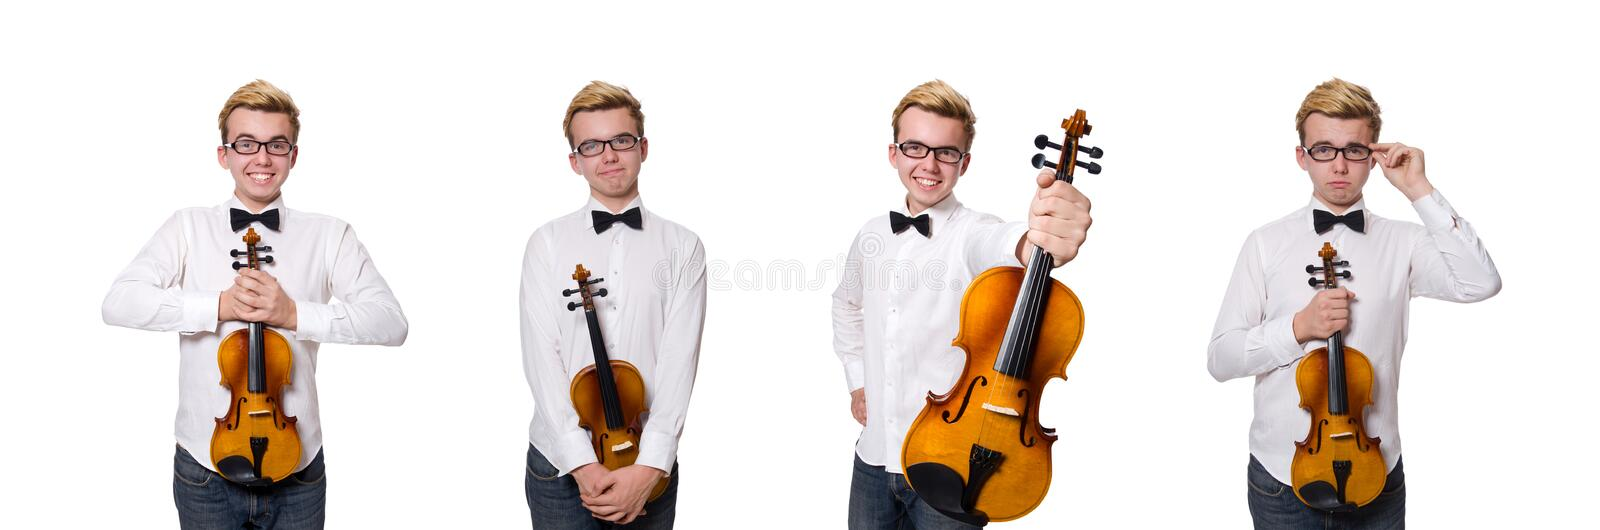 Young funny violin player isolated on white royalty free stock photos